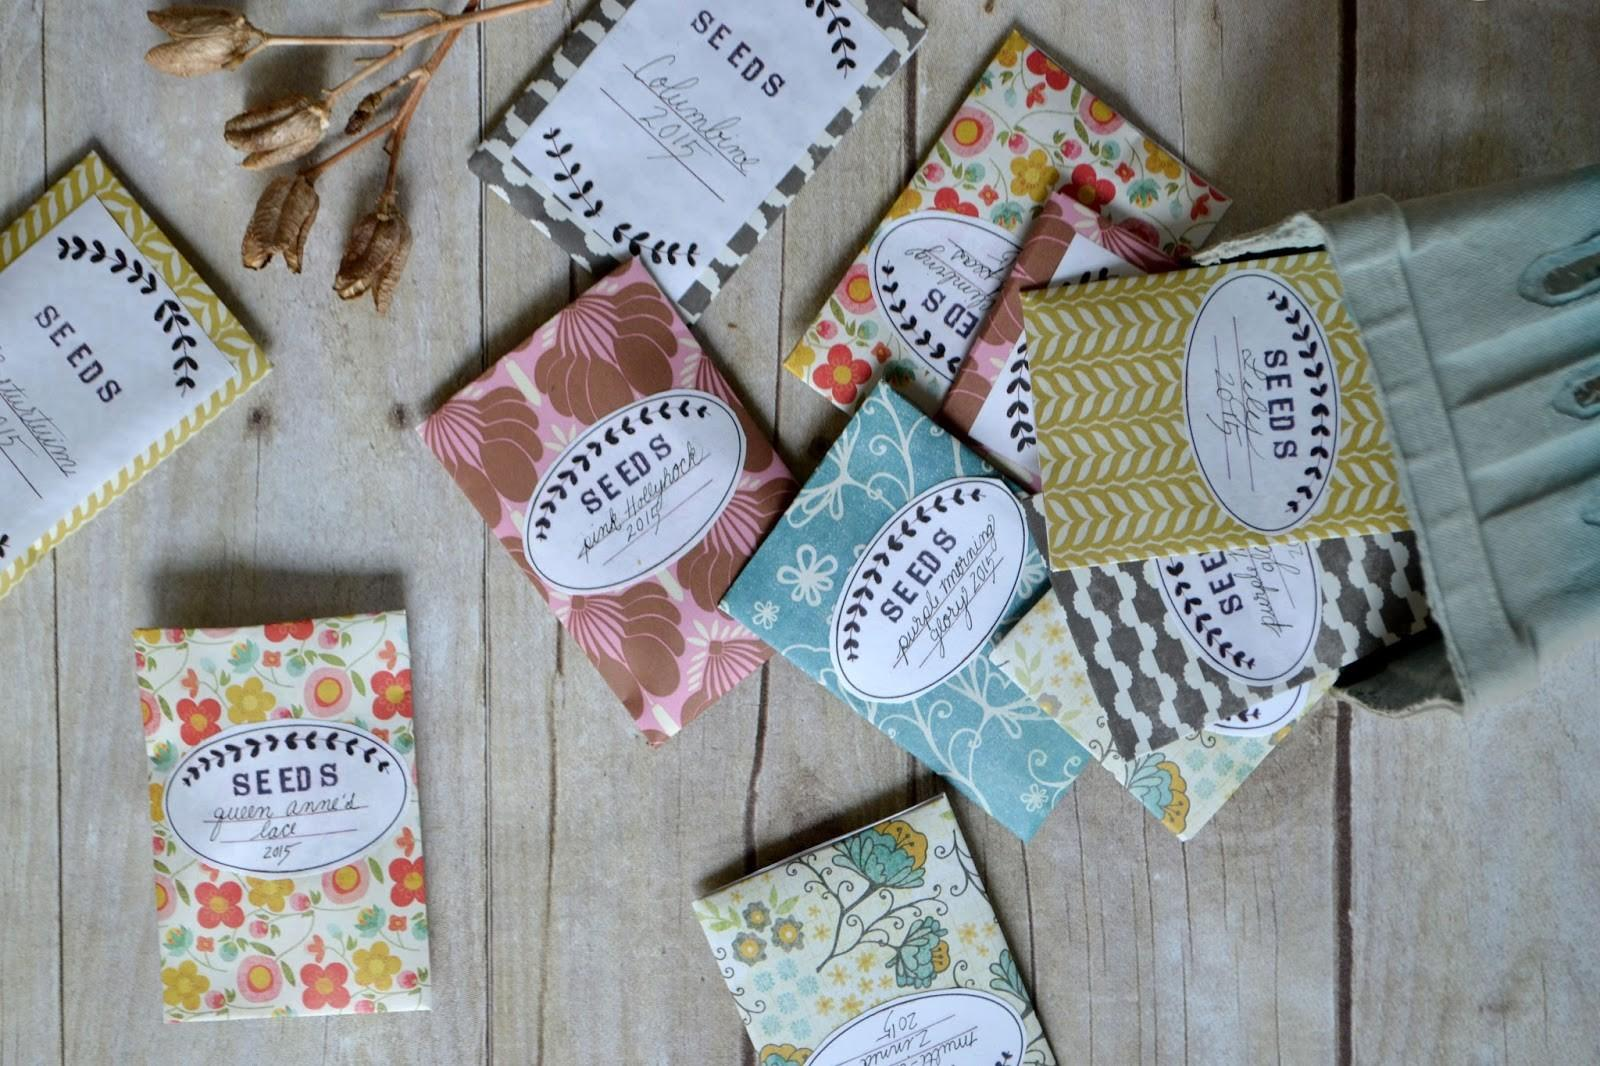 Attic Lace Diy Seed Packets